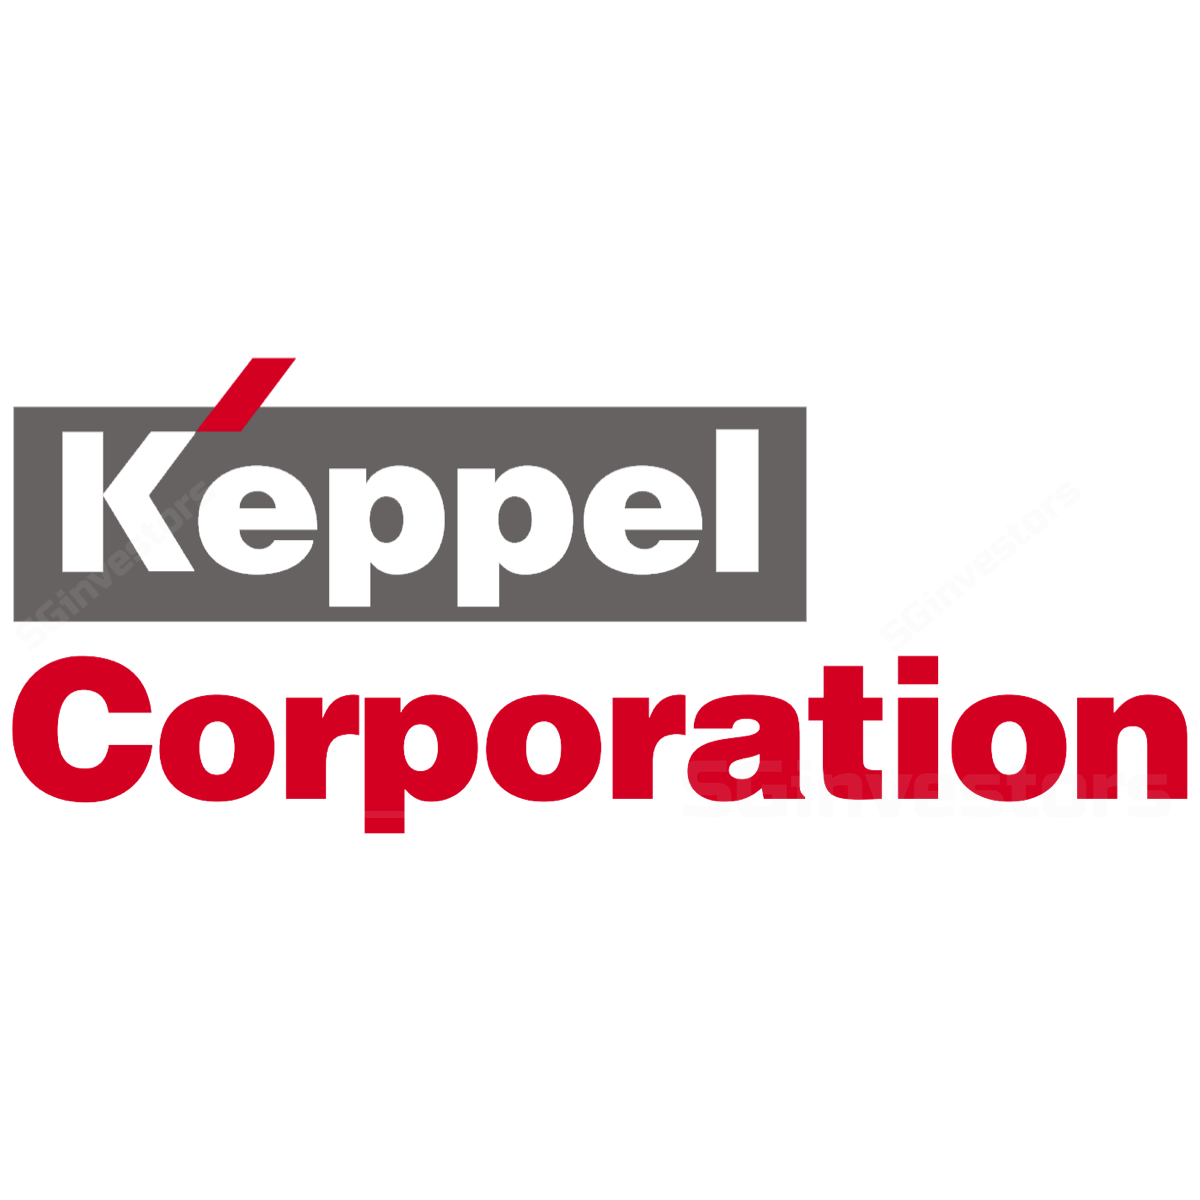 KEPPEL CORPORATION LIMITED (BN4.SI)